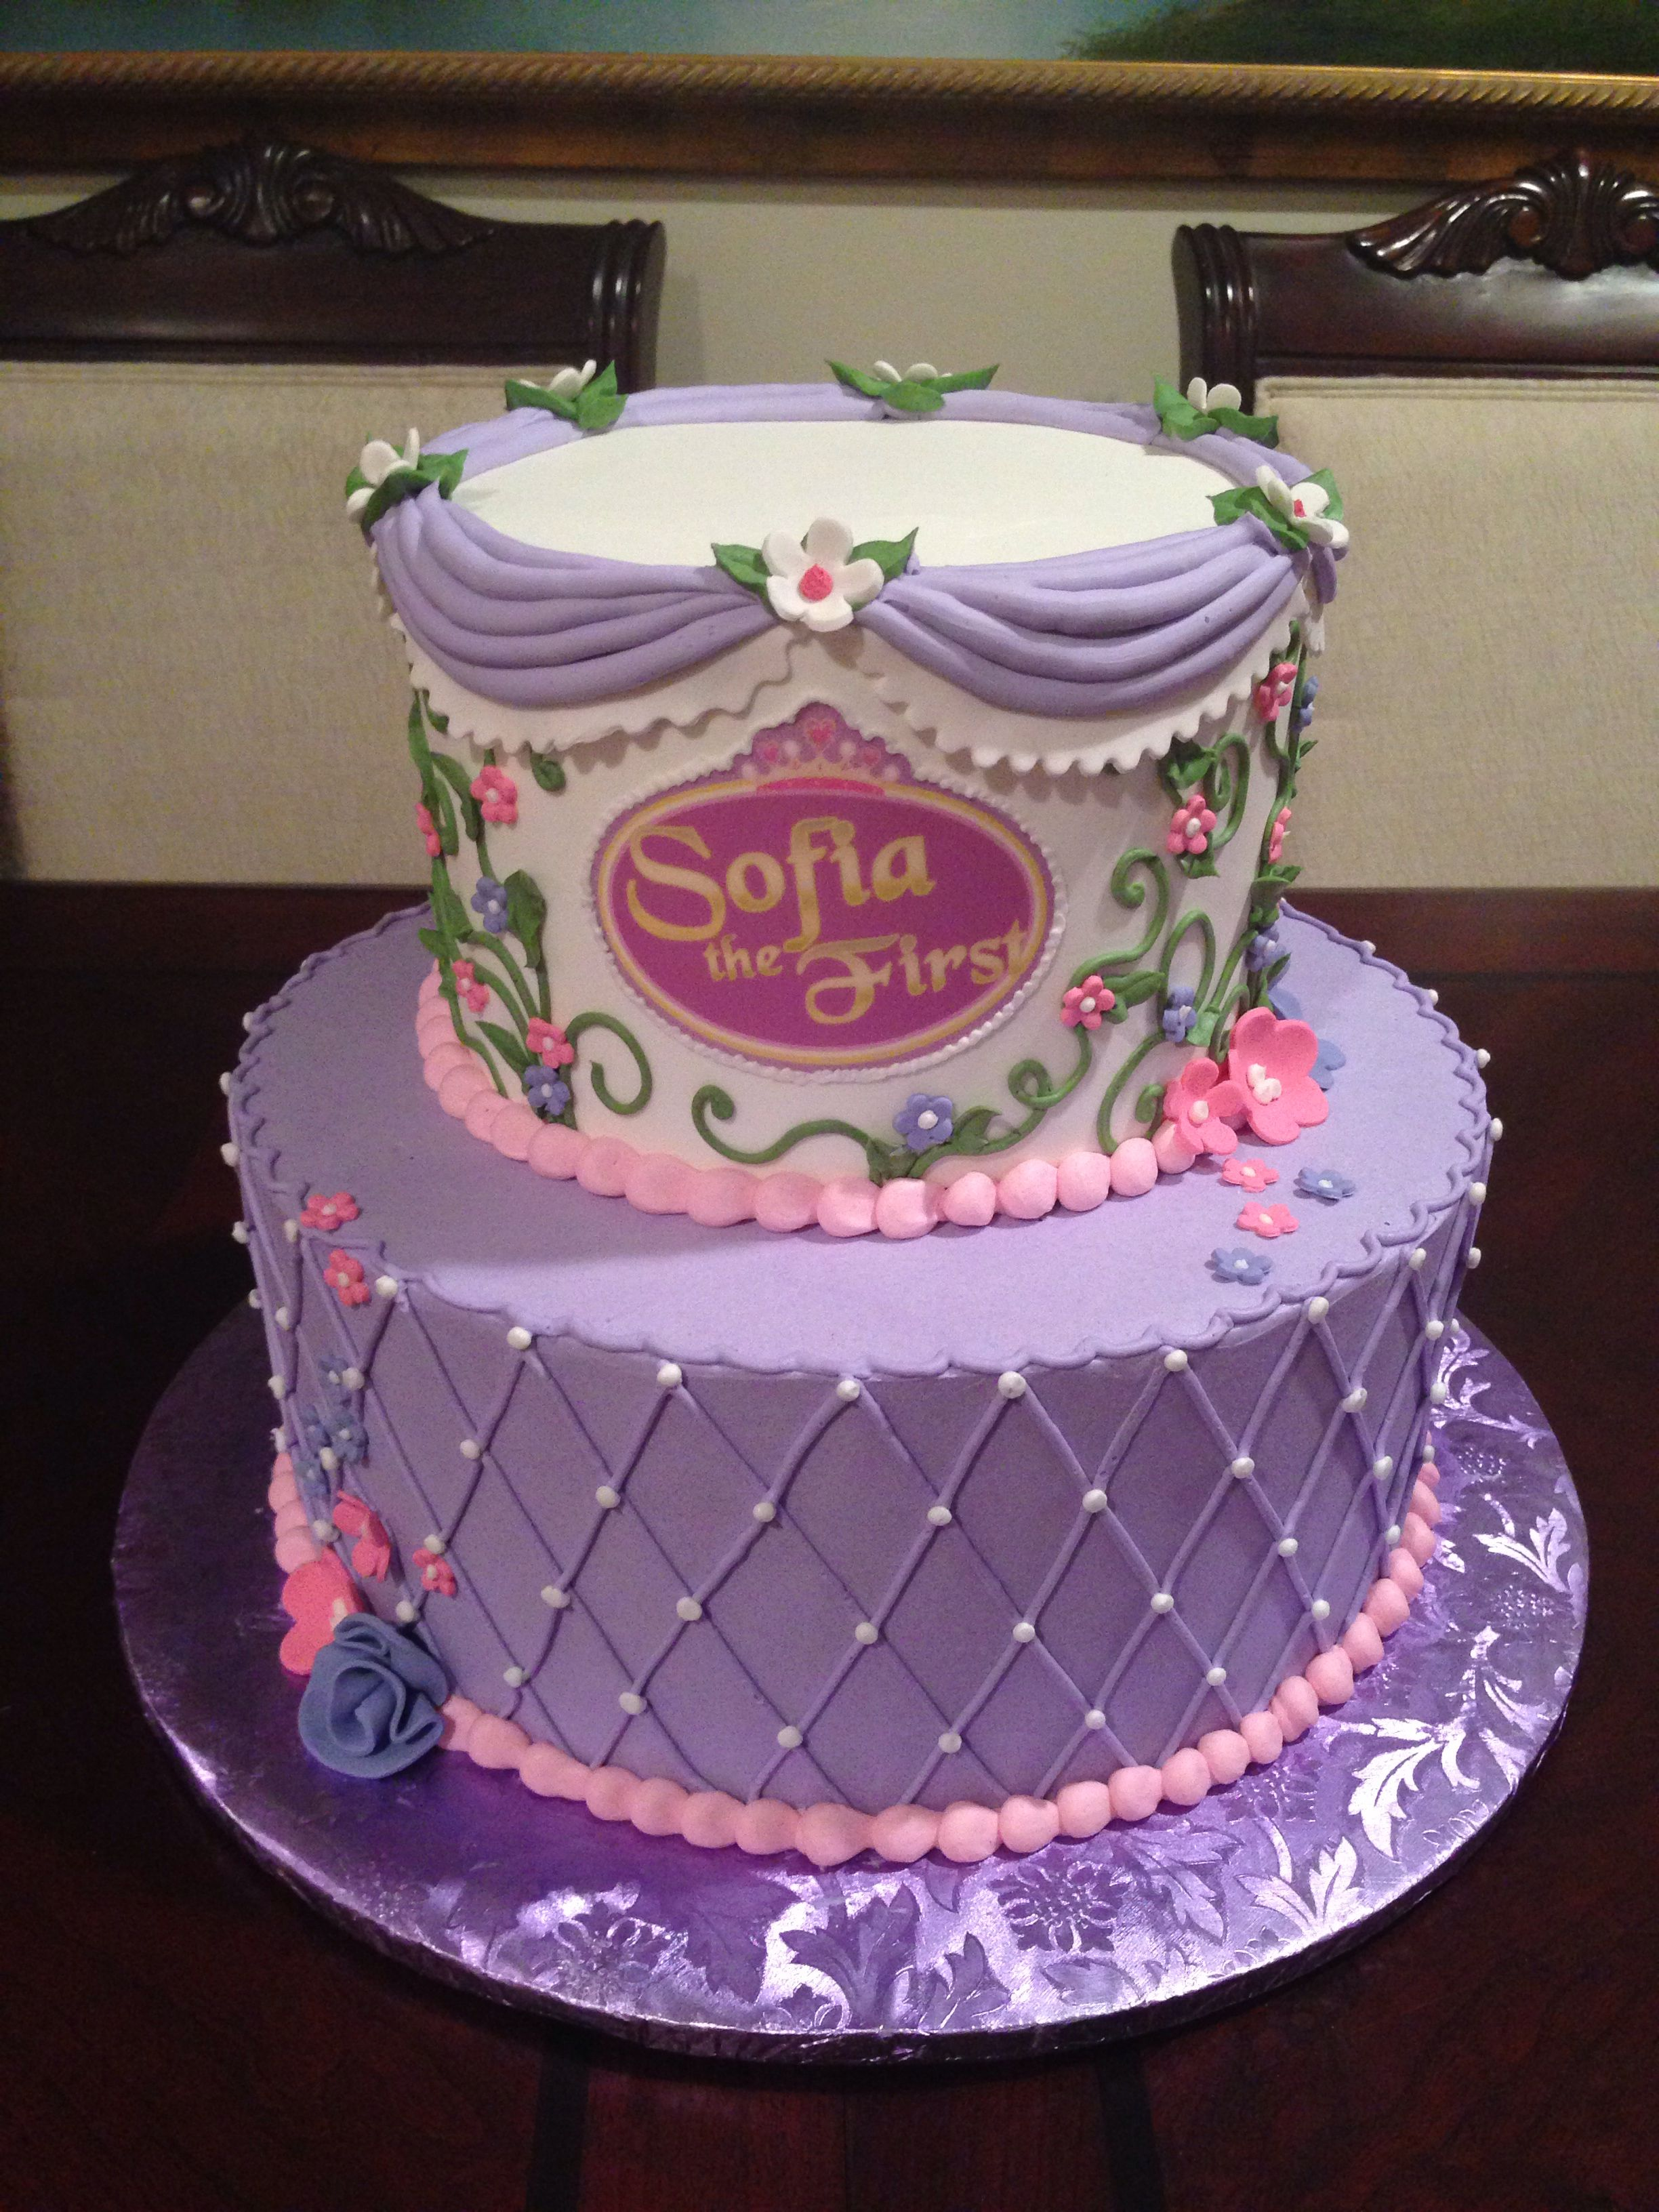 Sofia the First birthday cake Abbys Birthday Cakes Pinterest